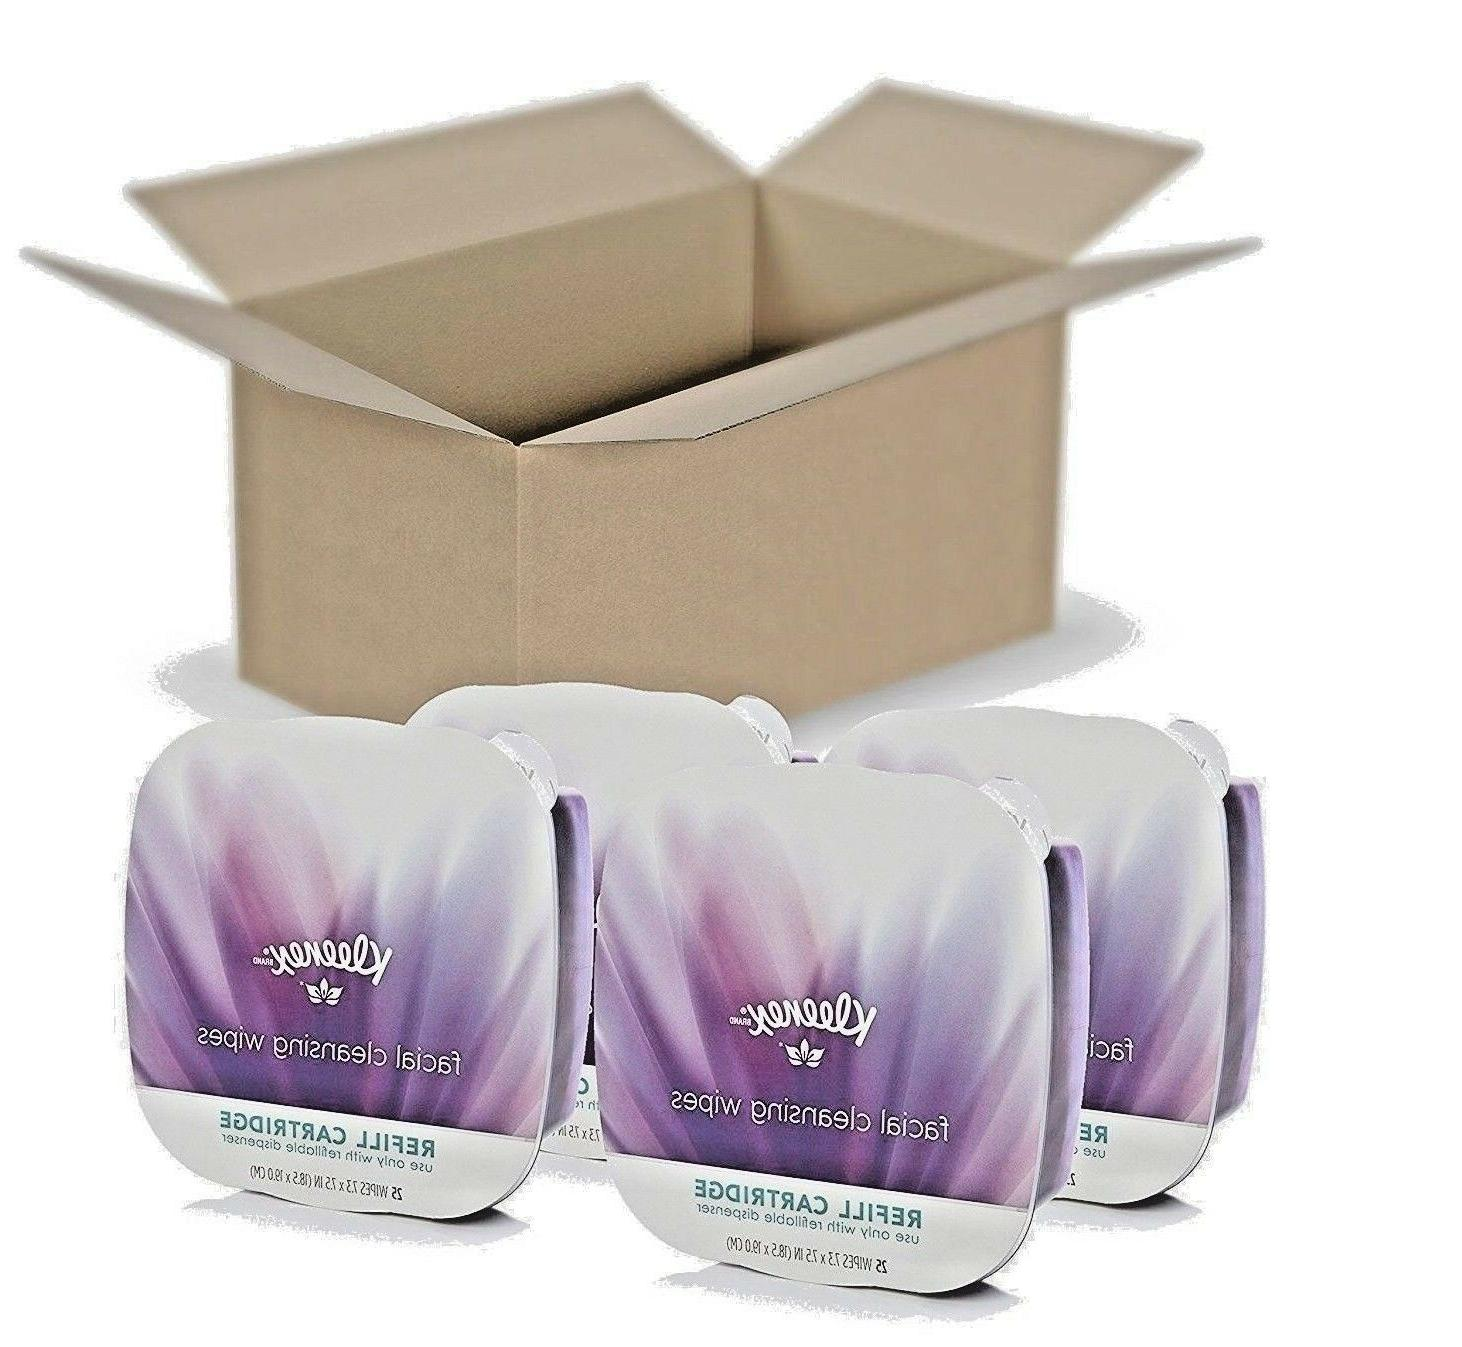 4 face cleansing wipes dispenser refill